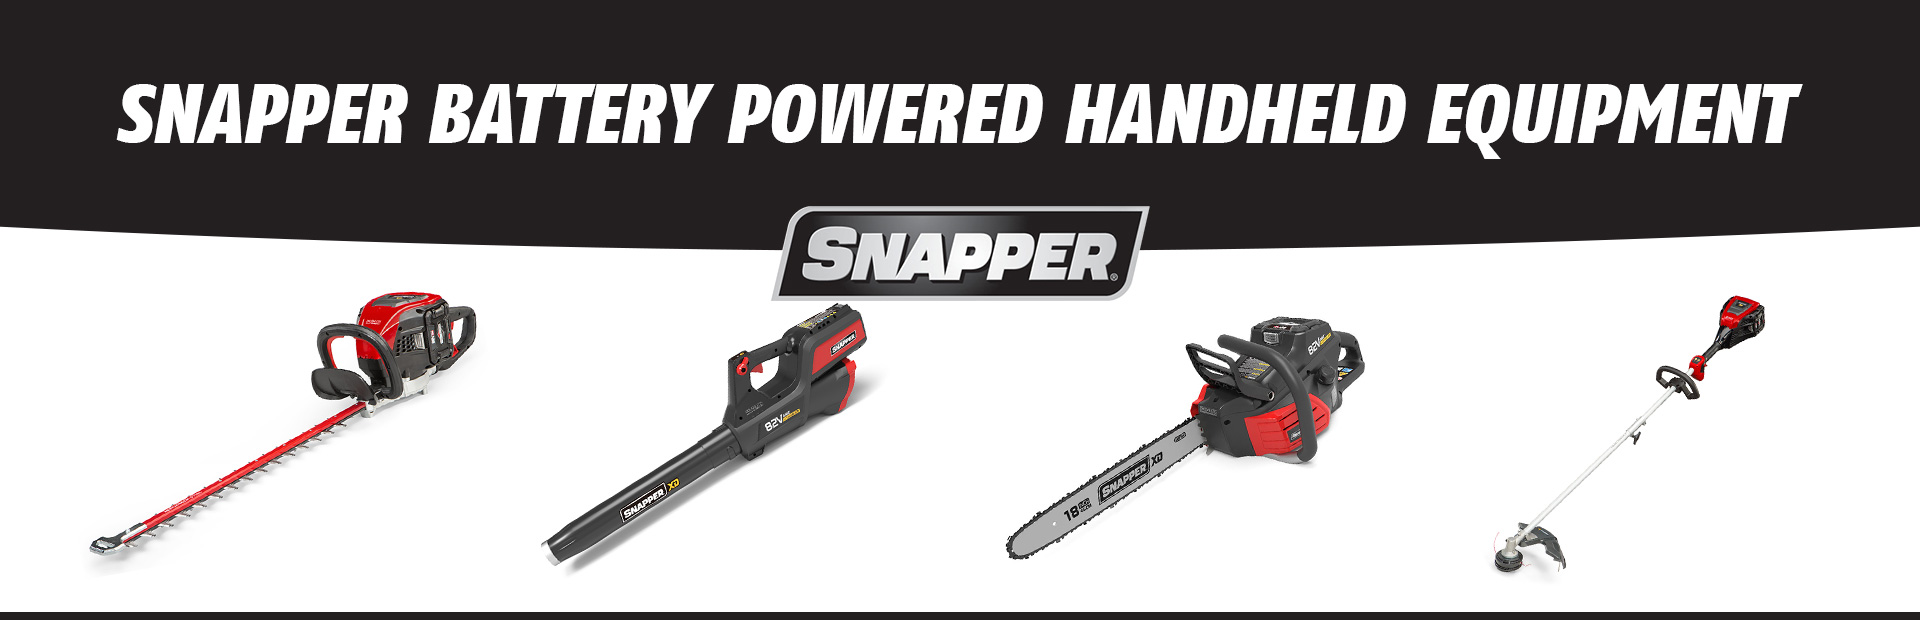 Snapper Battery Powered Handheld Equipment: Click here to browse online.